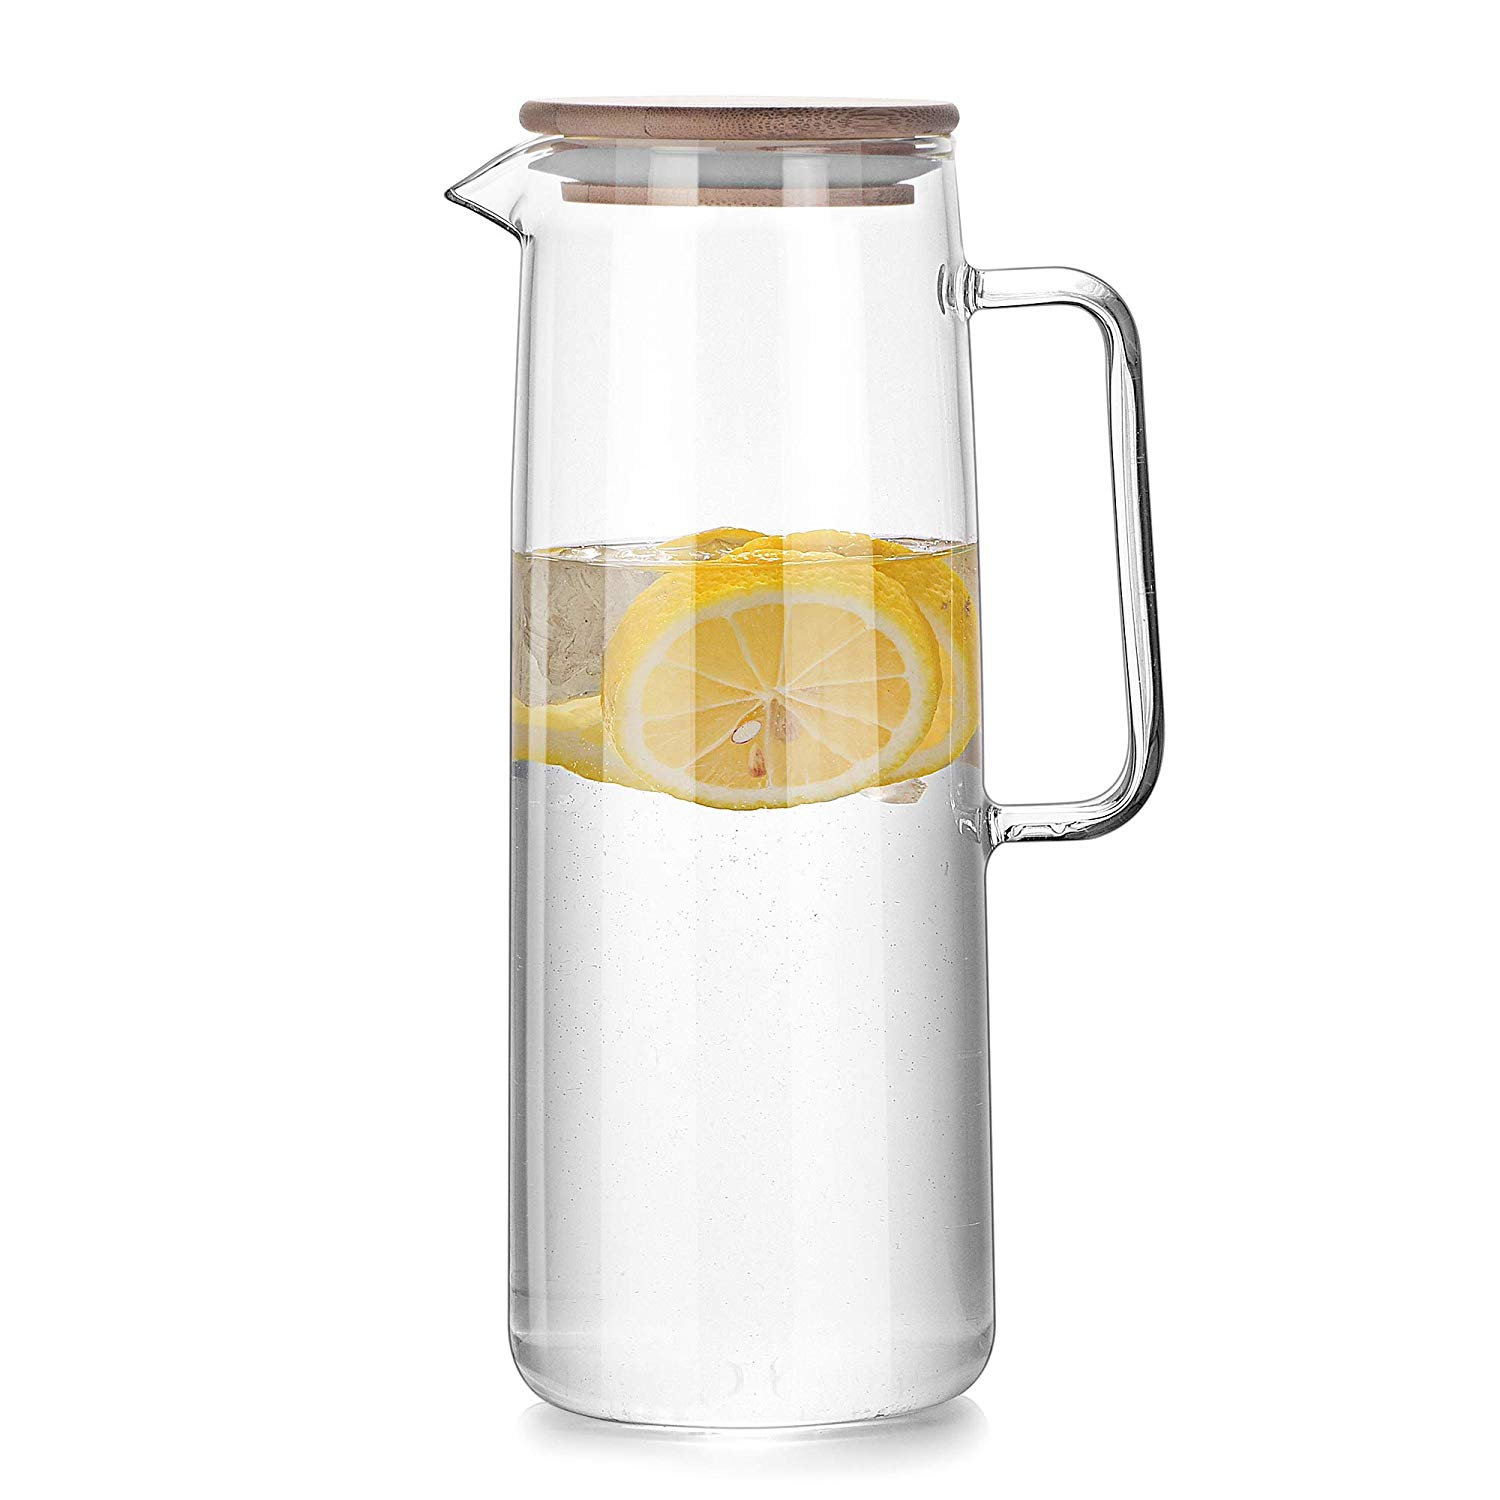 Hot/Cold Glass Carafe